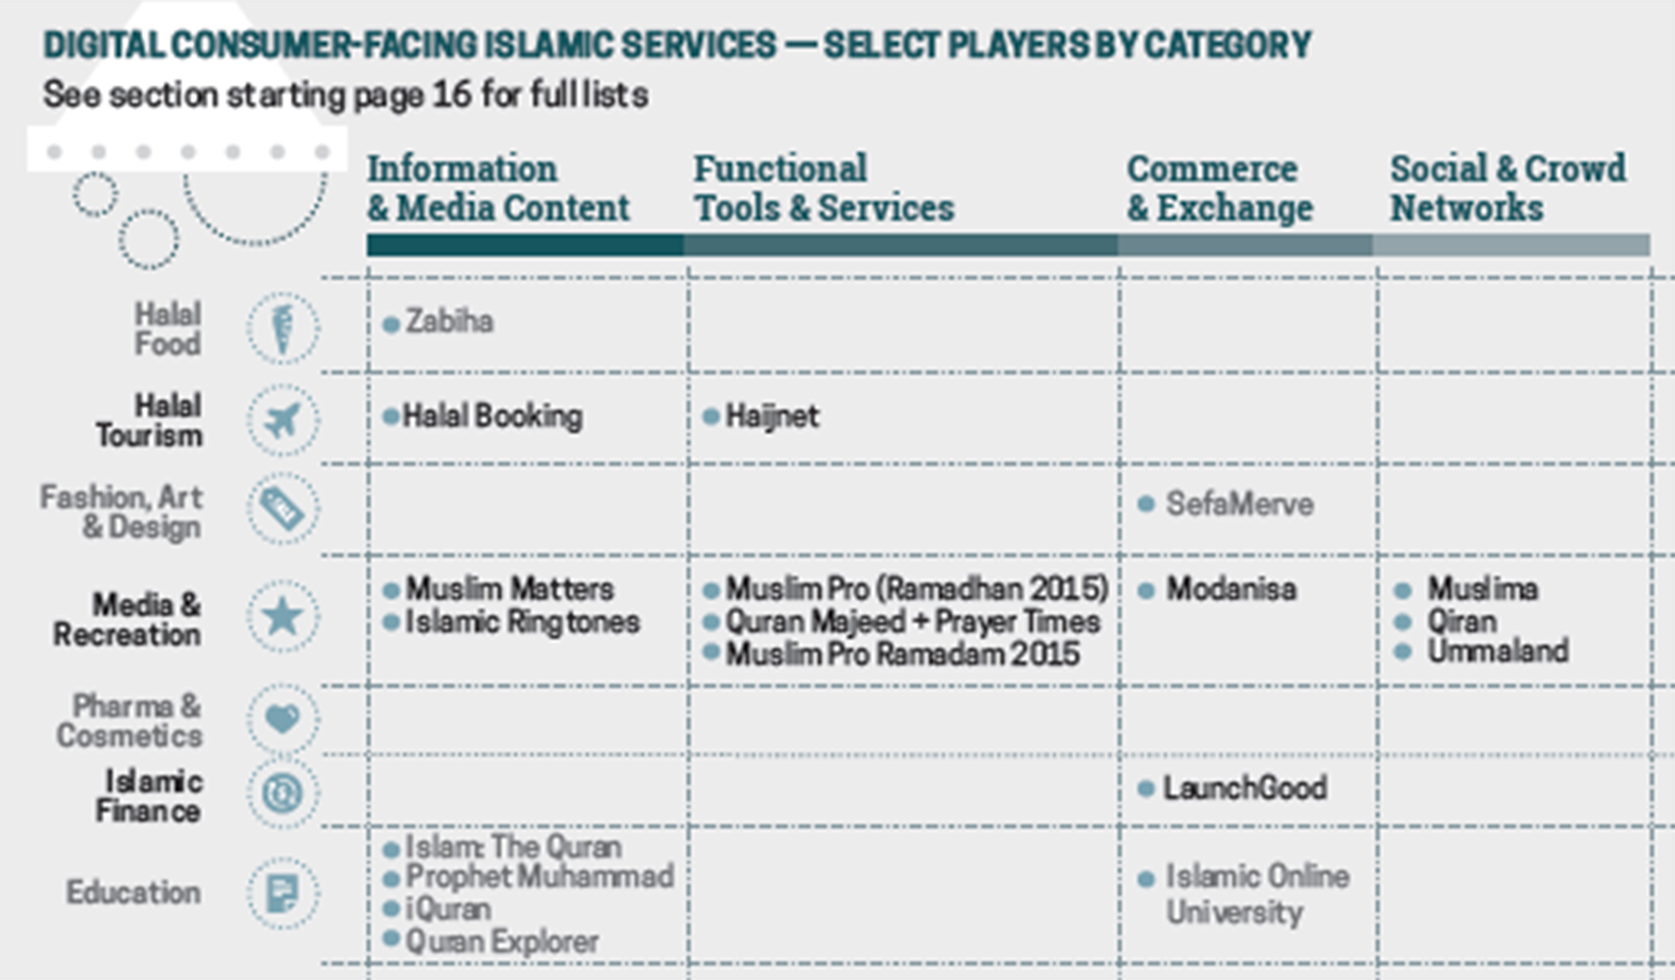 Digital Consumer-Facing Islamic Services